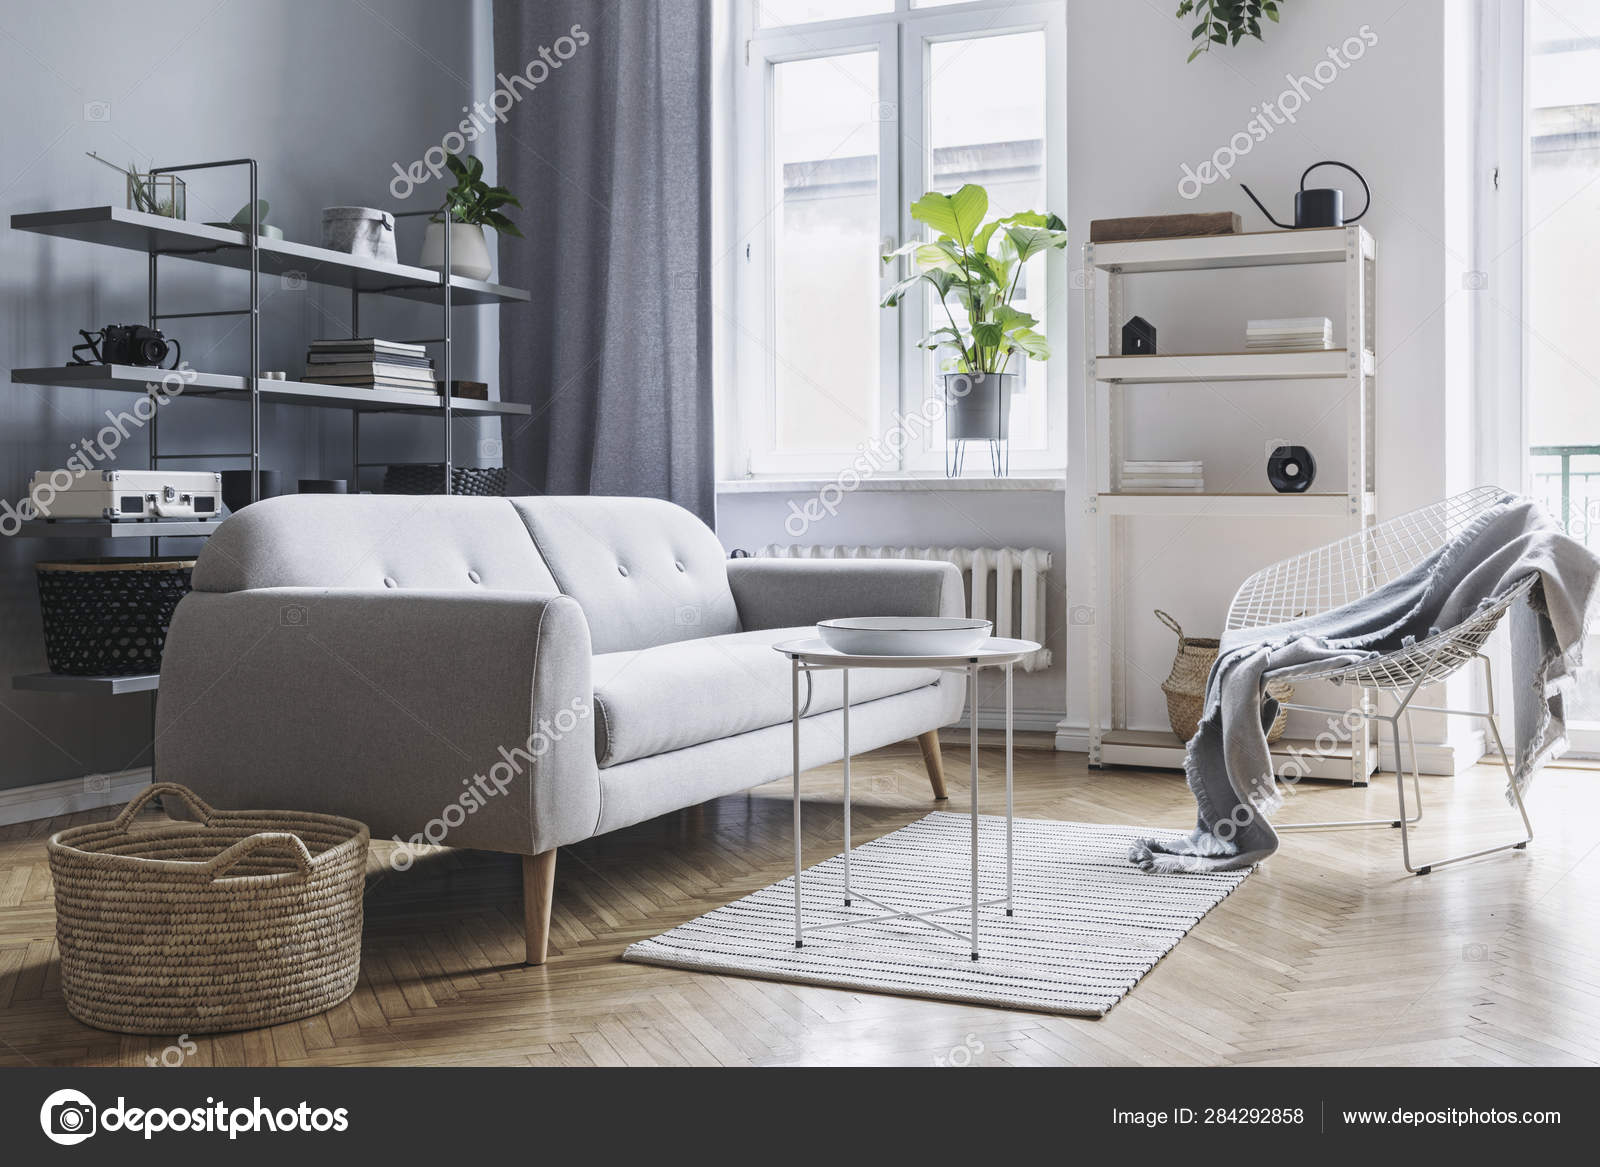 Modern Bright Nordic Living Room Design Sofa Coffee Table Plants Stock Photo Image By C Followtheflow 284292858